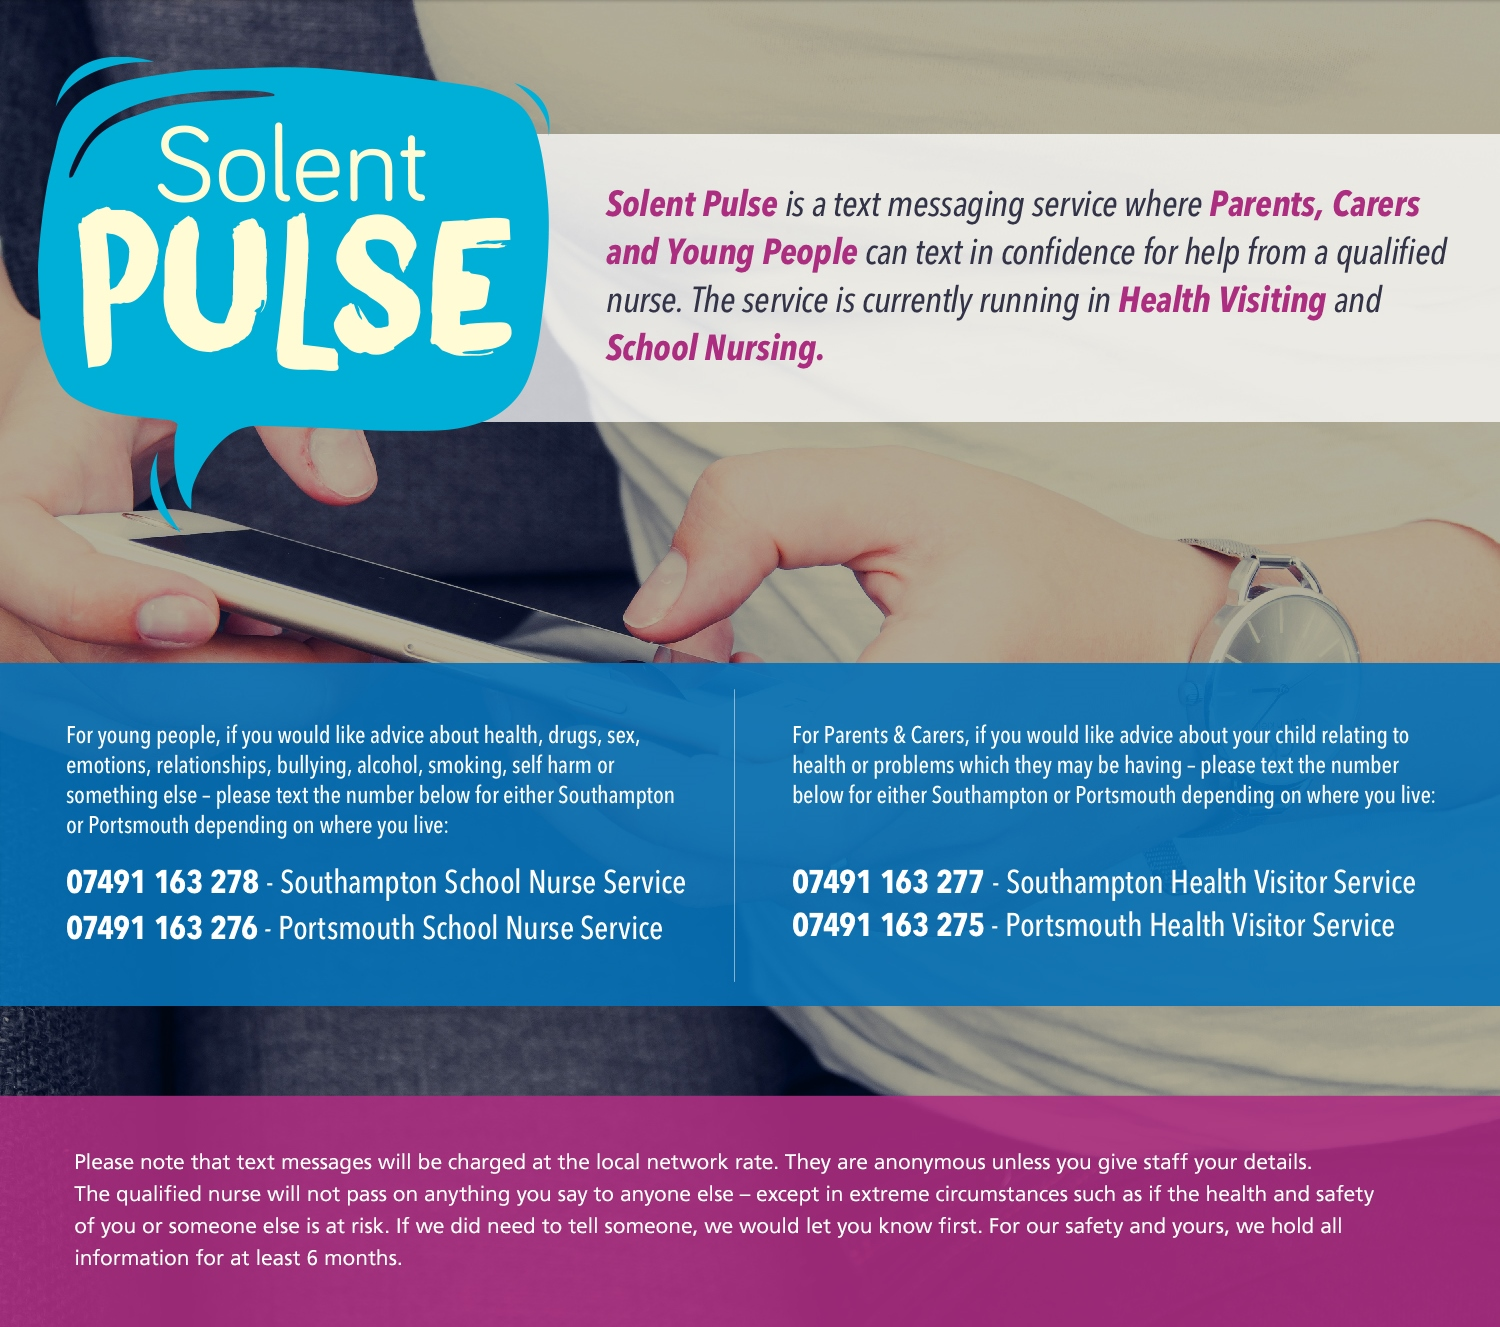 Solent_Pulse_Website.jpg